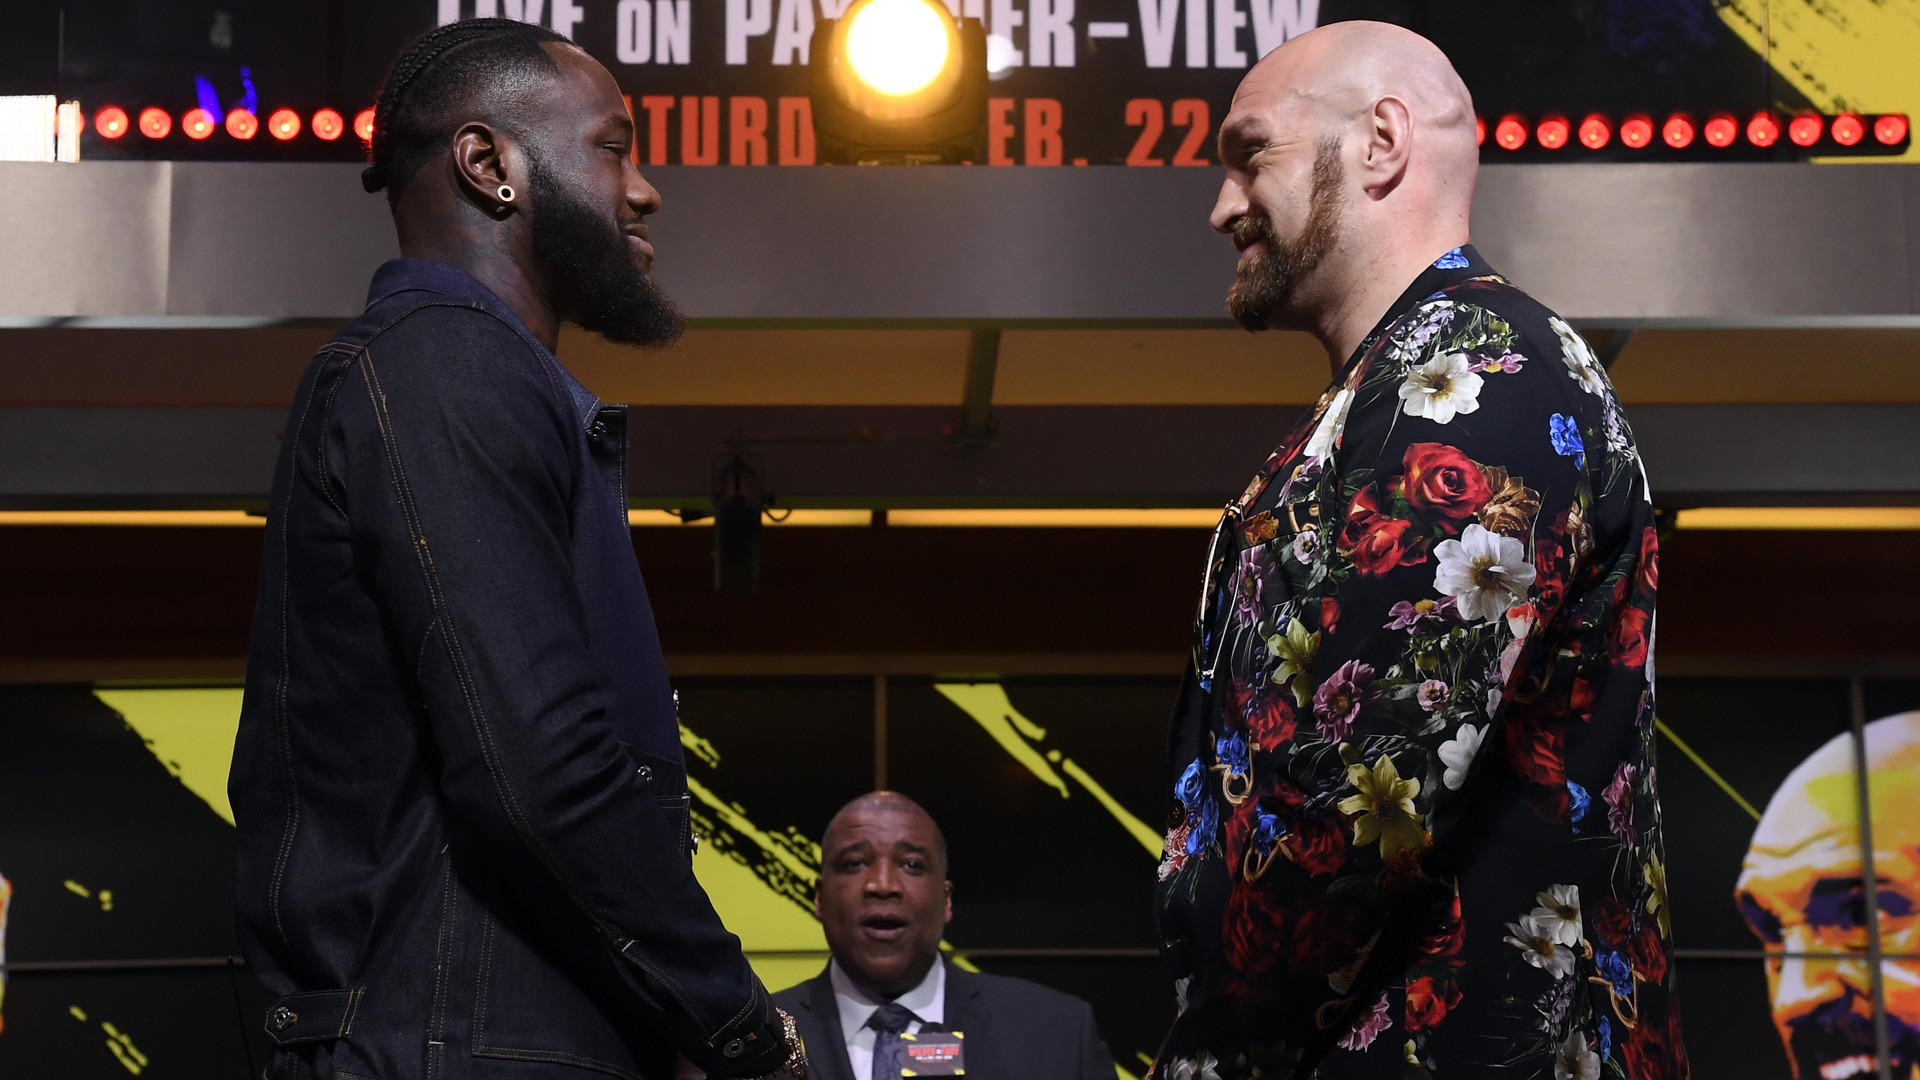 Fury sees 'very nervous' Wilder as pair almost come to blows